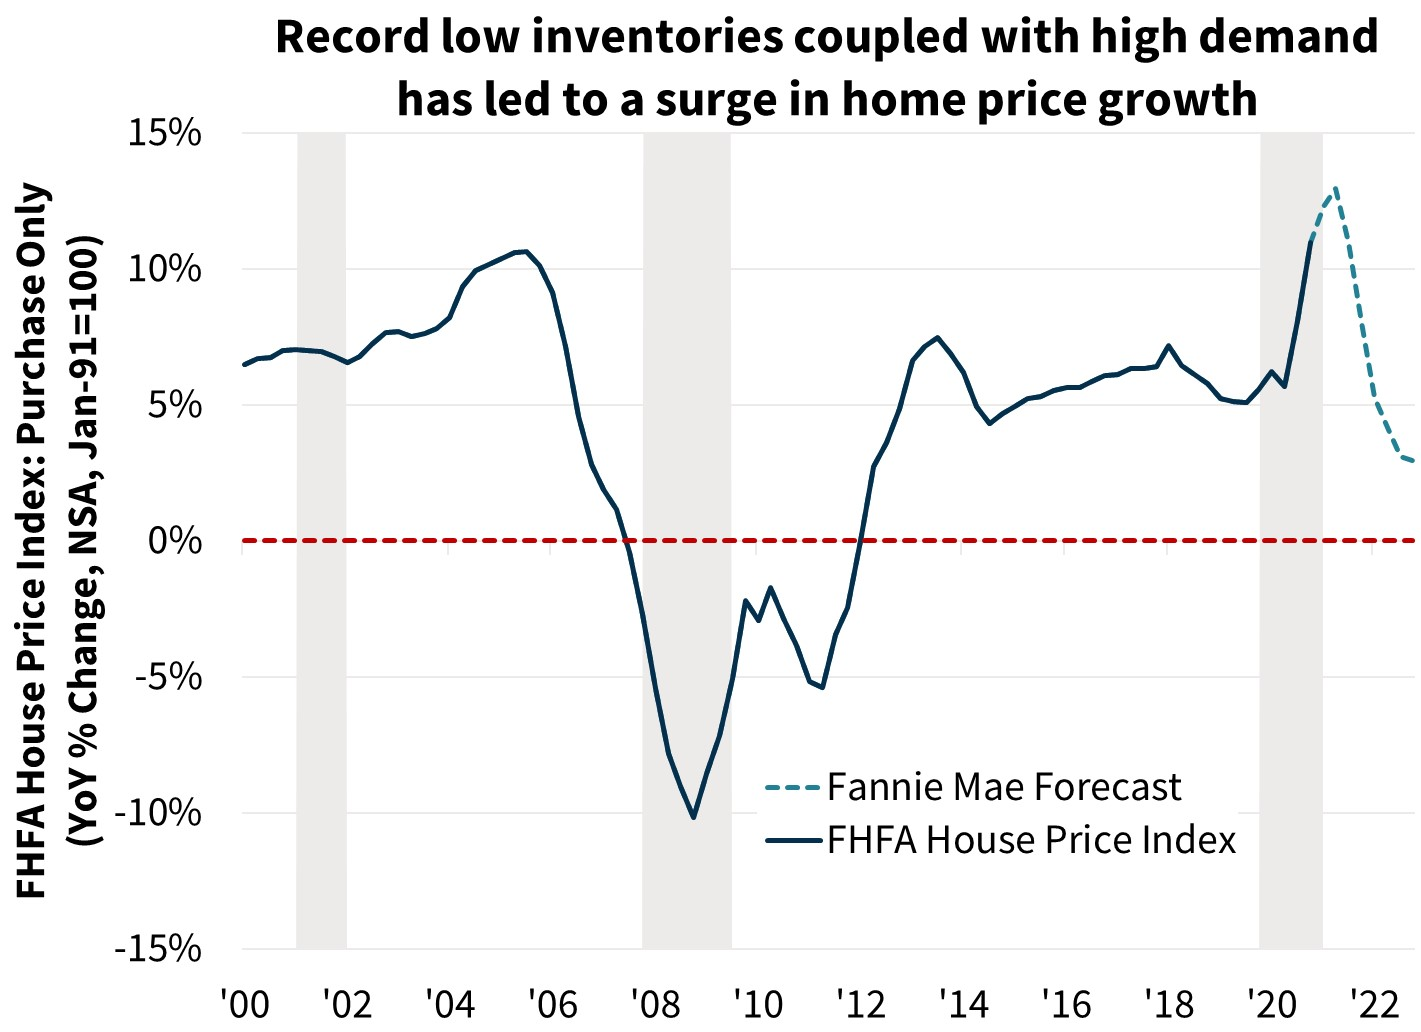 Record low inventories coupled with high demand has led to a surge in home price growth